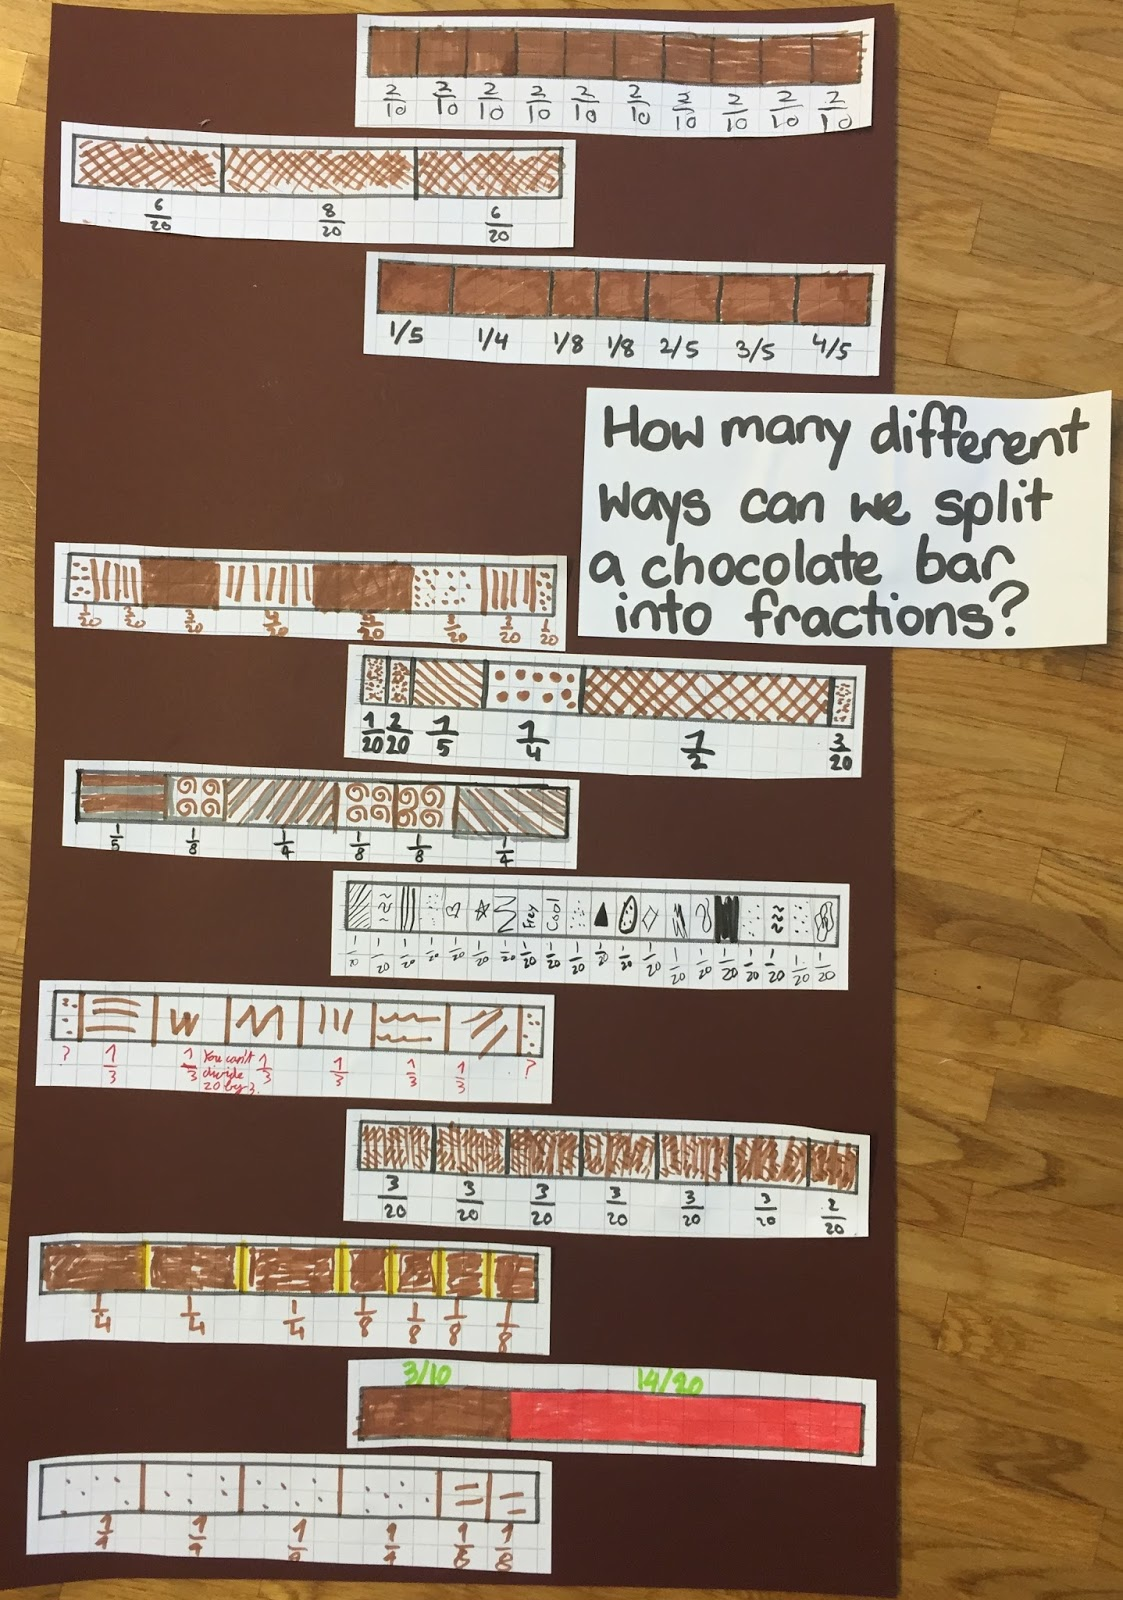 Open Ended Chocolate Bar Fraction Activity